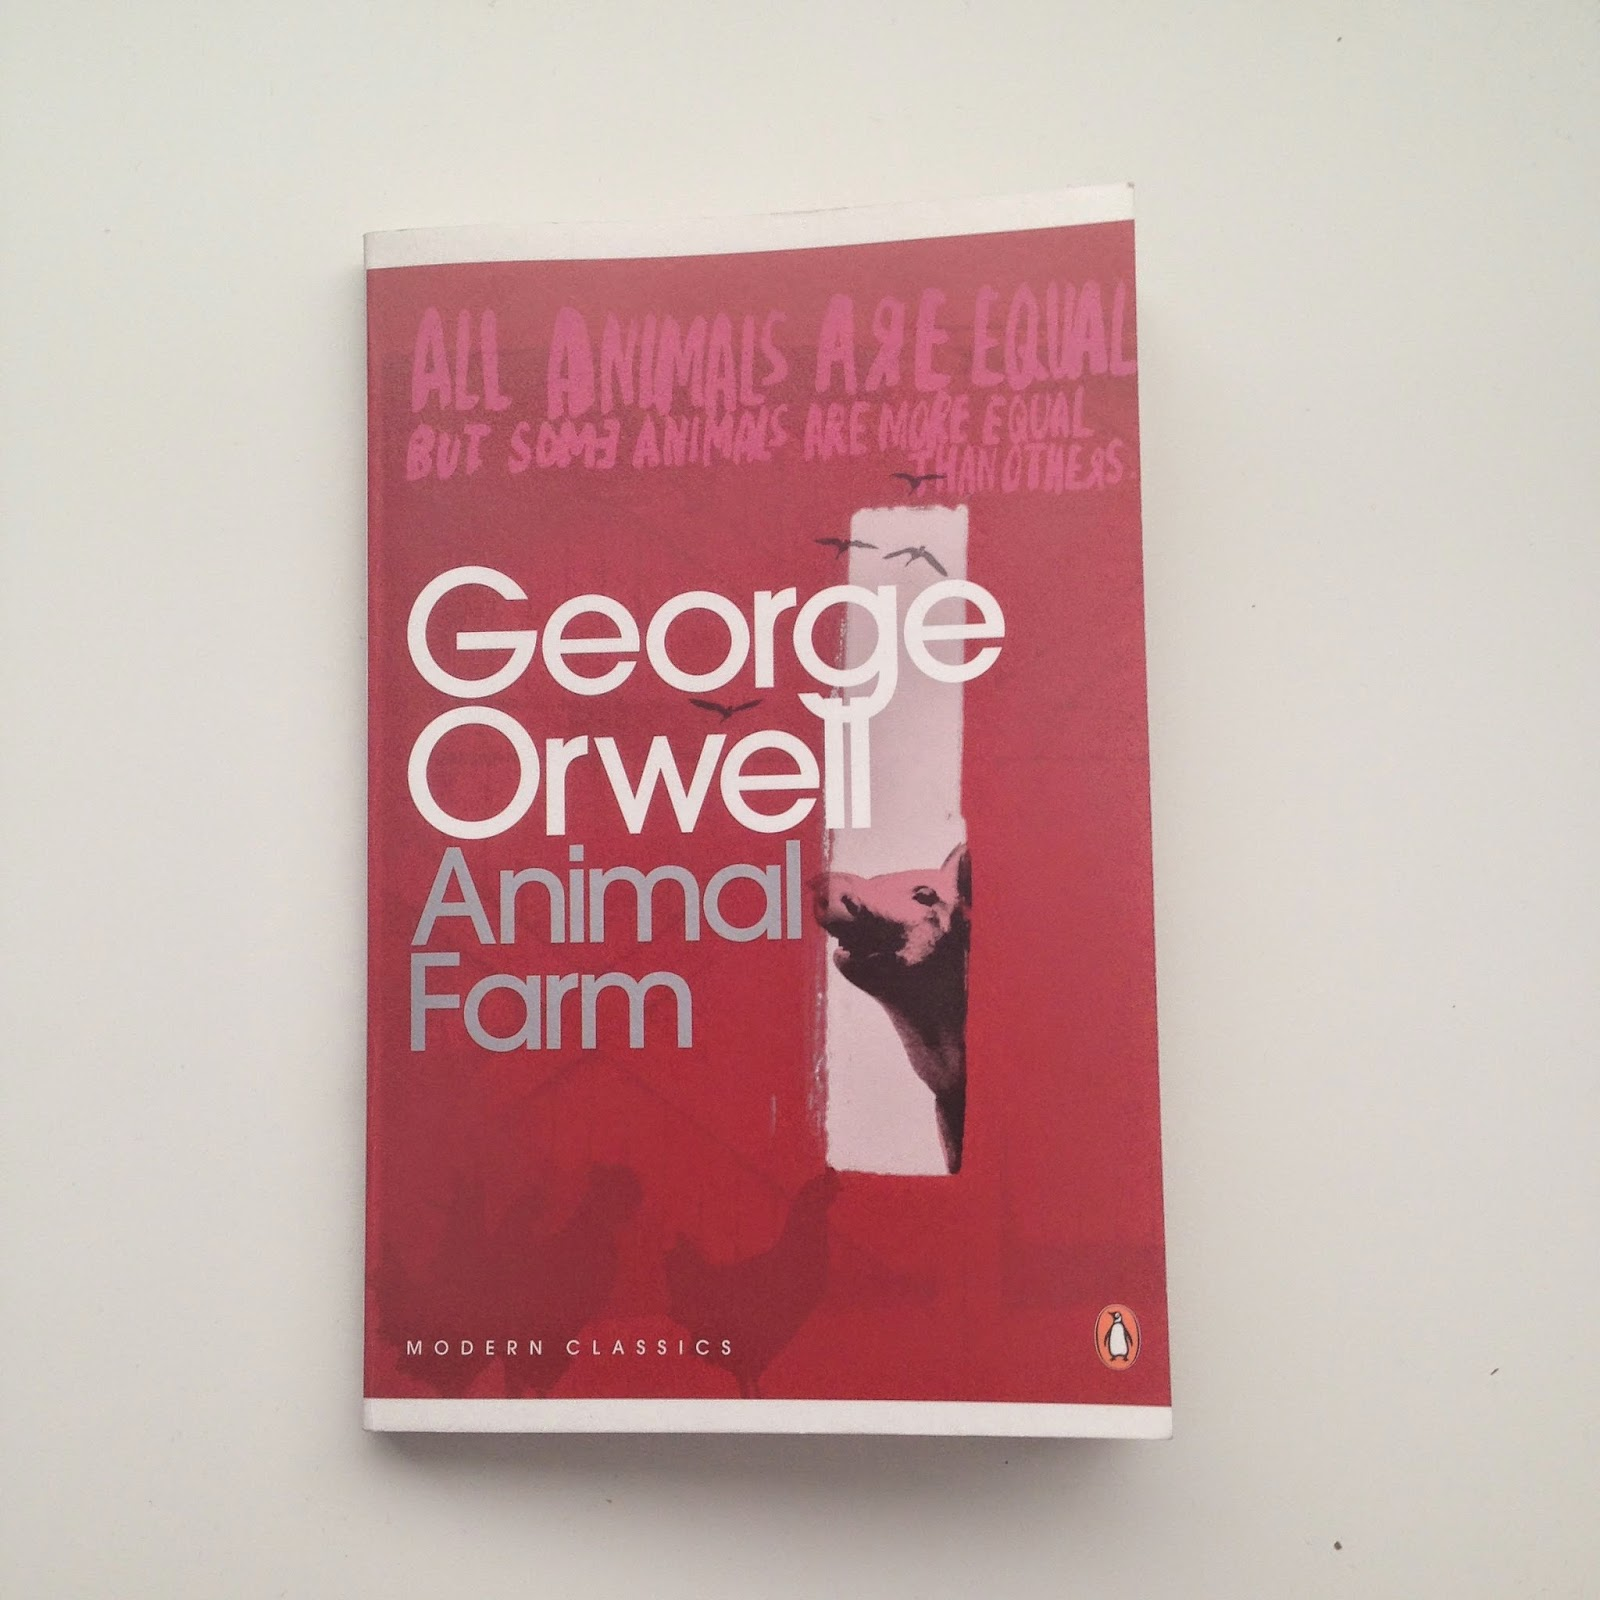 an essay of the book animal farm by george orwell Essay pg 1 animal farm eric arthur blair, better known by his psuedonym george orwell, is an english author commonly known to write about political issues orwell has been highly acclaimed and criticized for his novels.